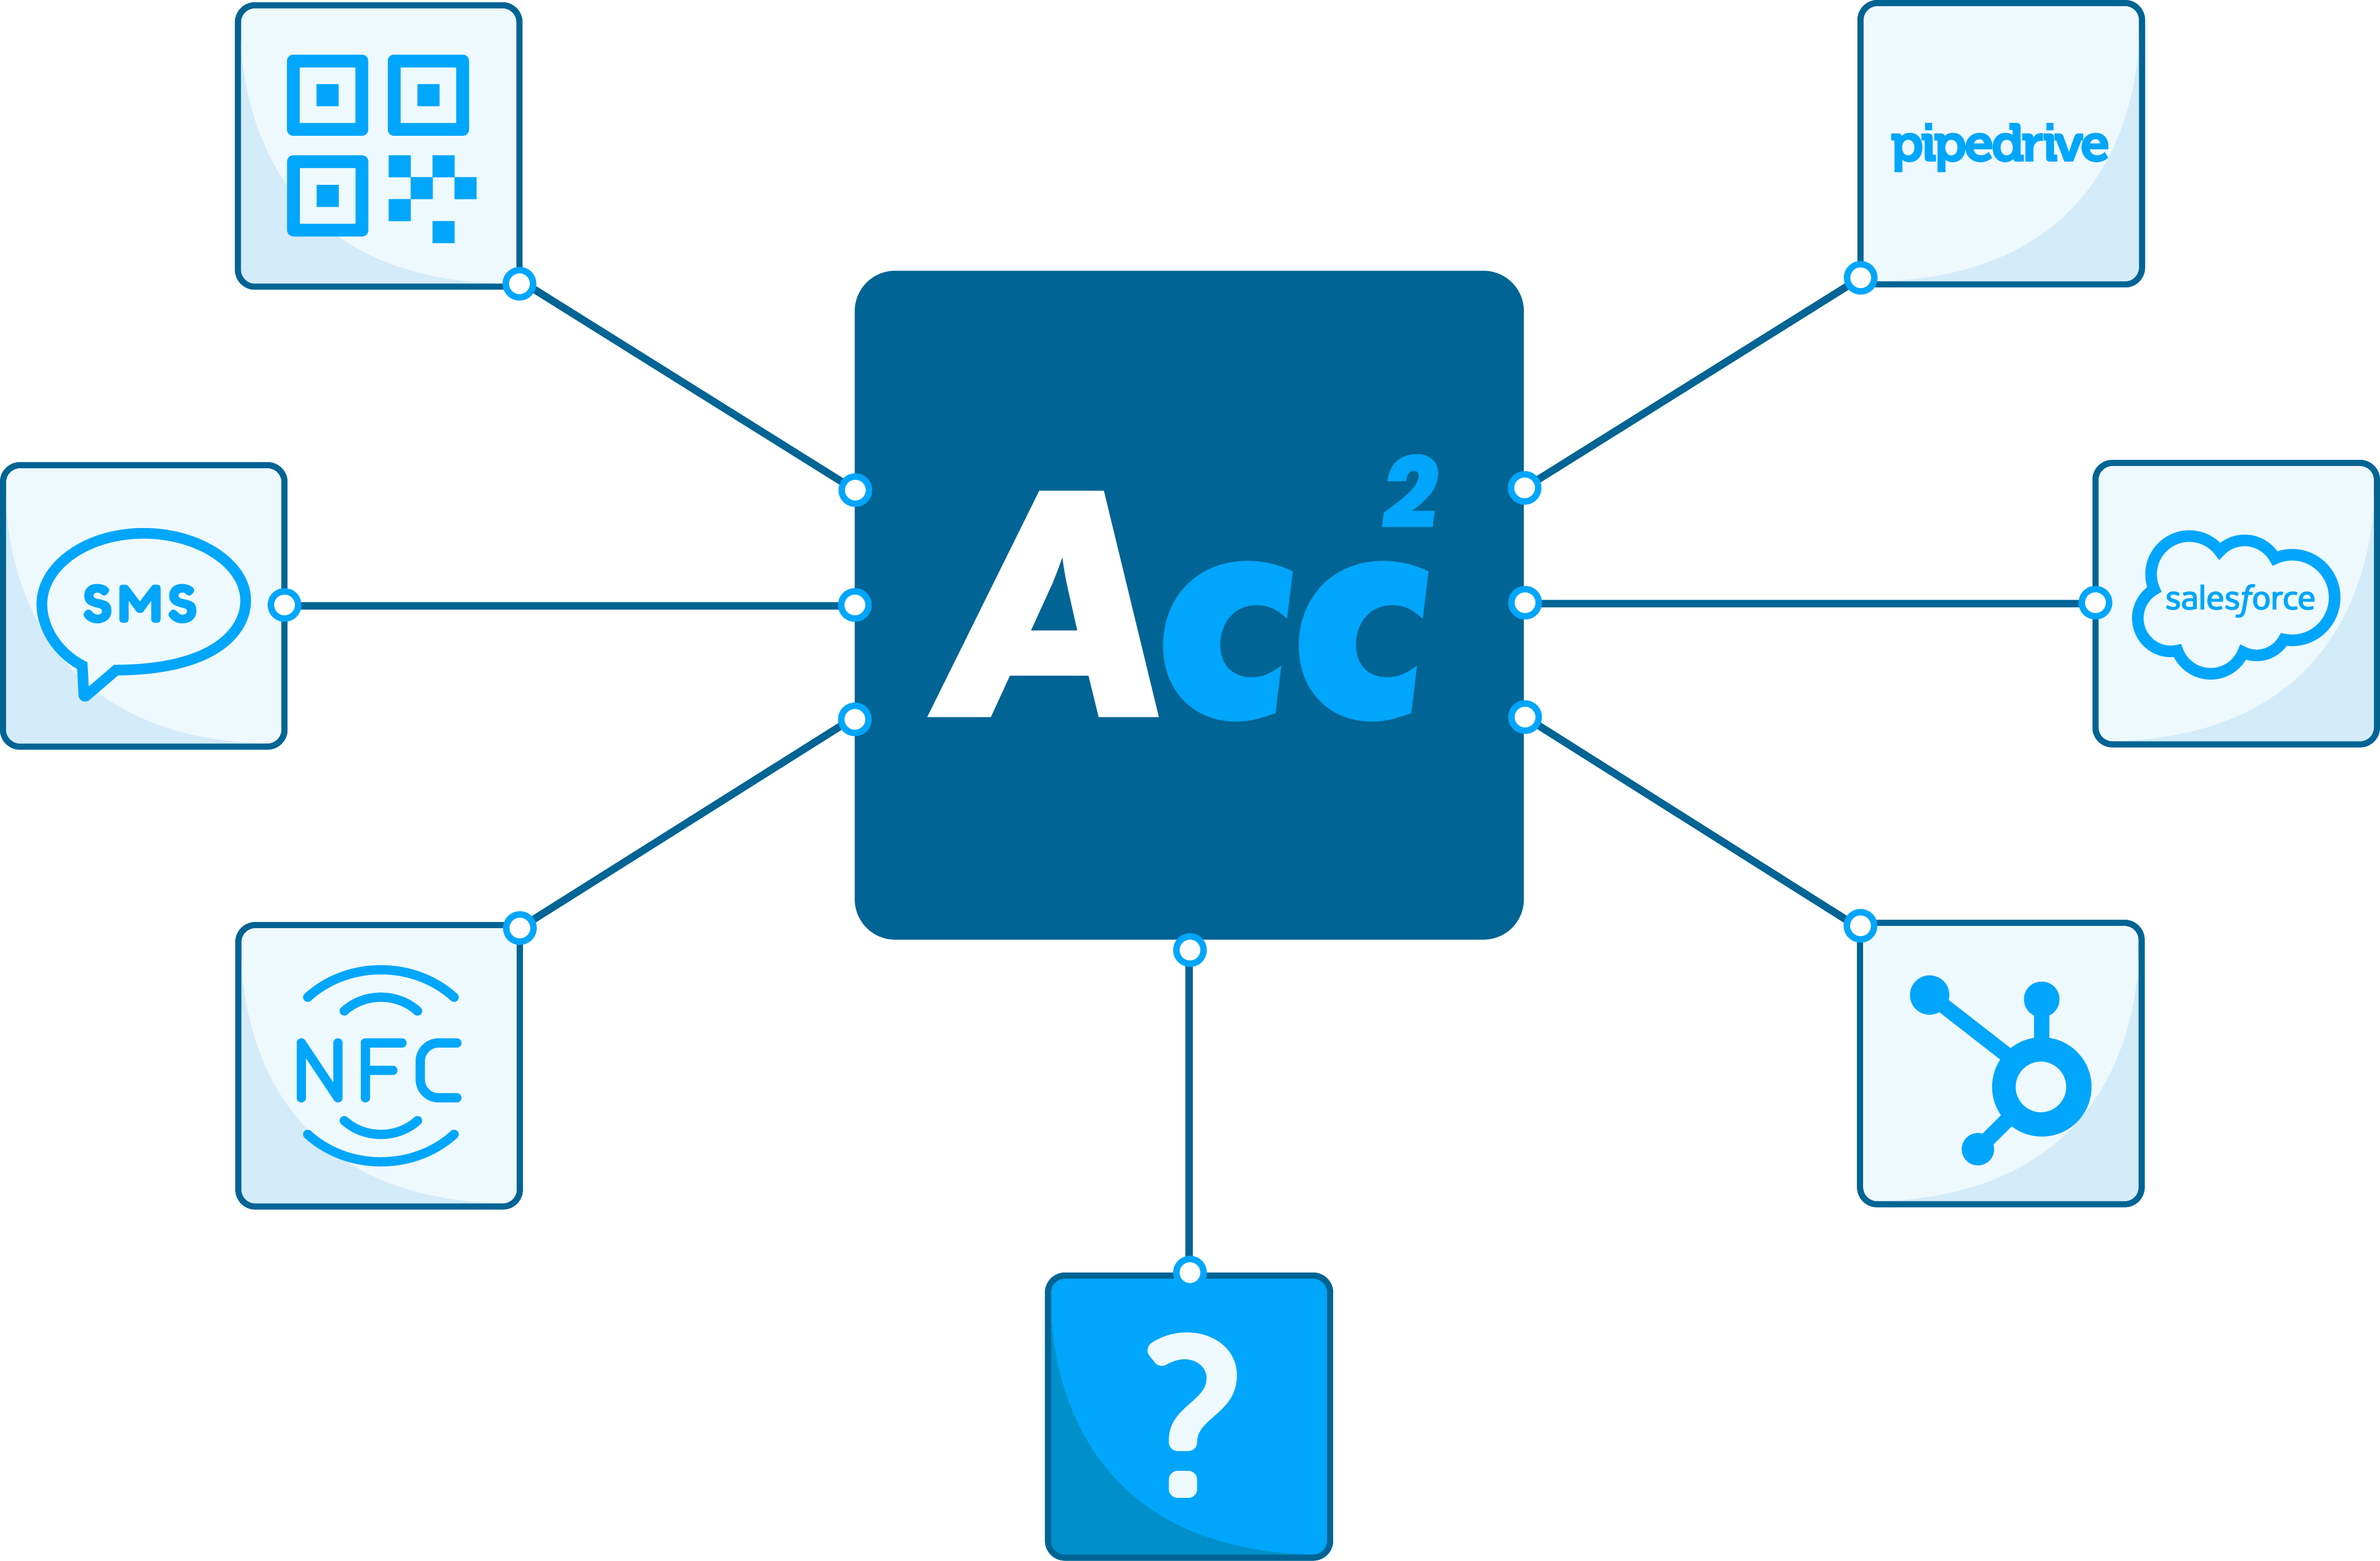 System Integration Service of Accelerate2